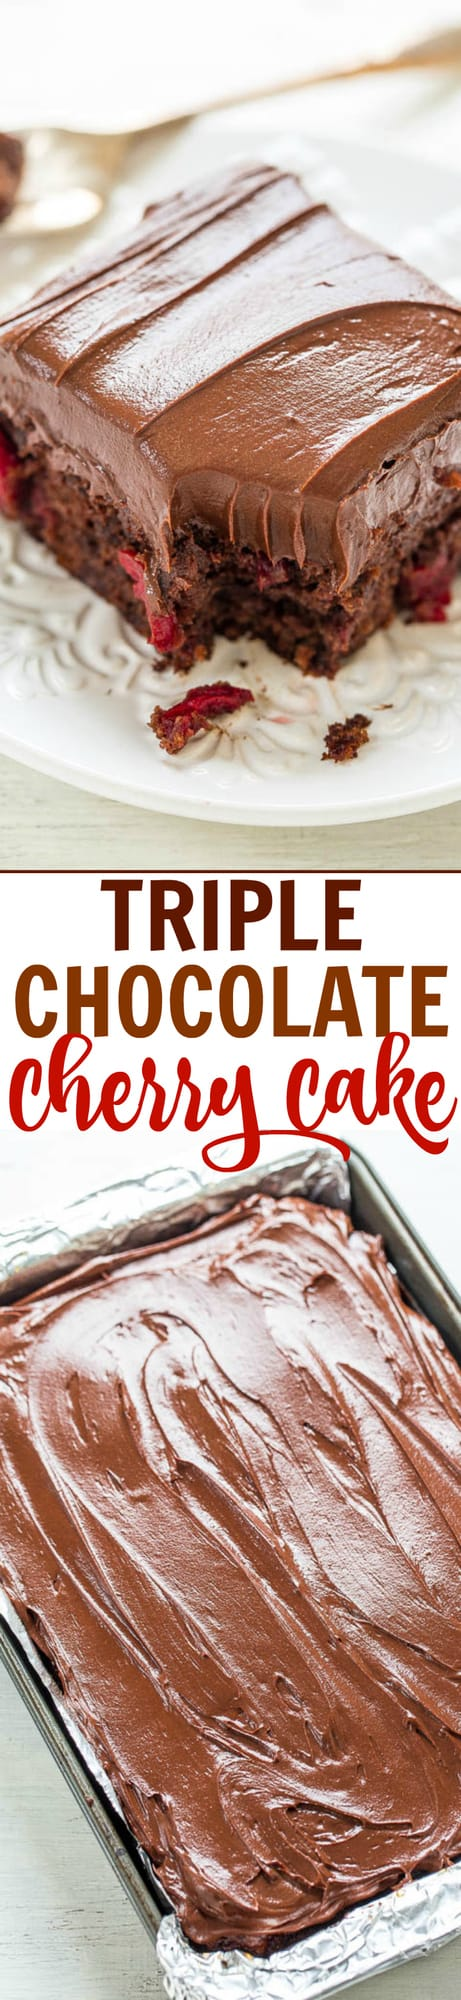 Triple Chocolate Cherry Cake - An extremely moist, rich cake that's so EASY and studded with CHERRIES!! The frosting is silky smooth and my new FAVORITE chocolate frosting!! A 10 out of 10 showstopper!!